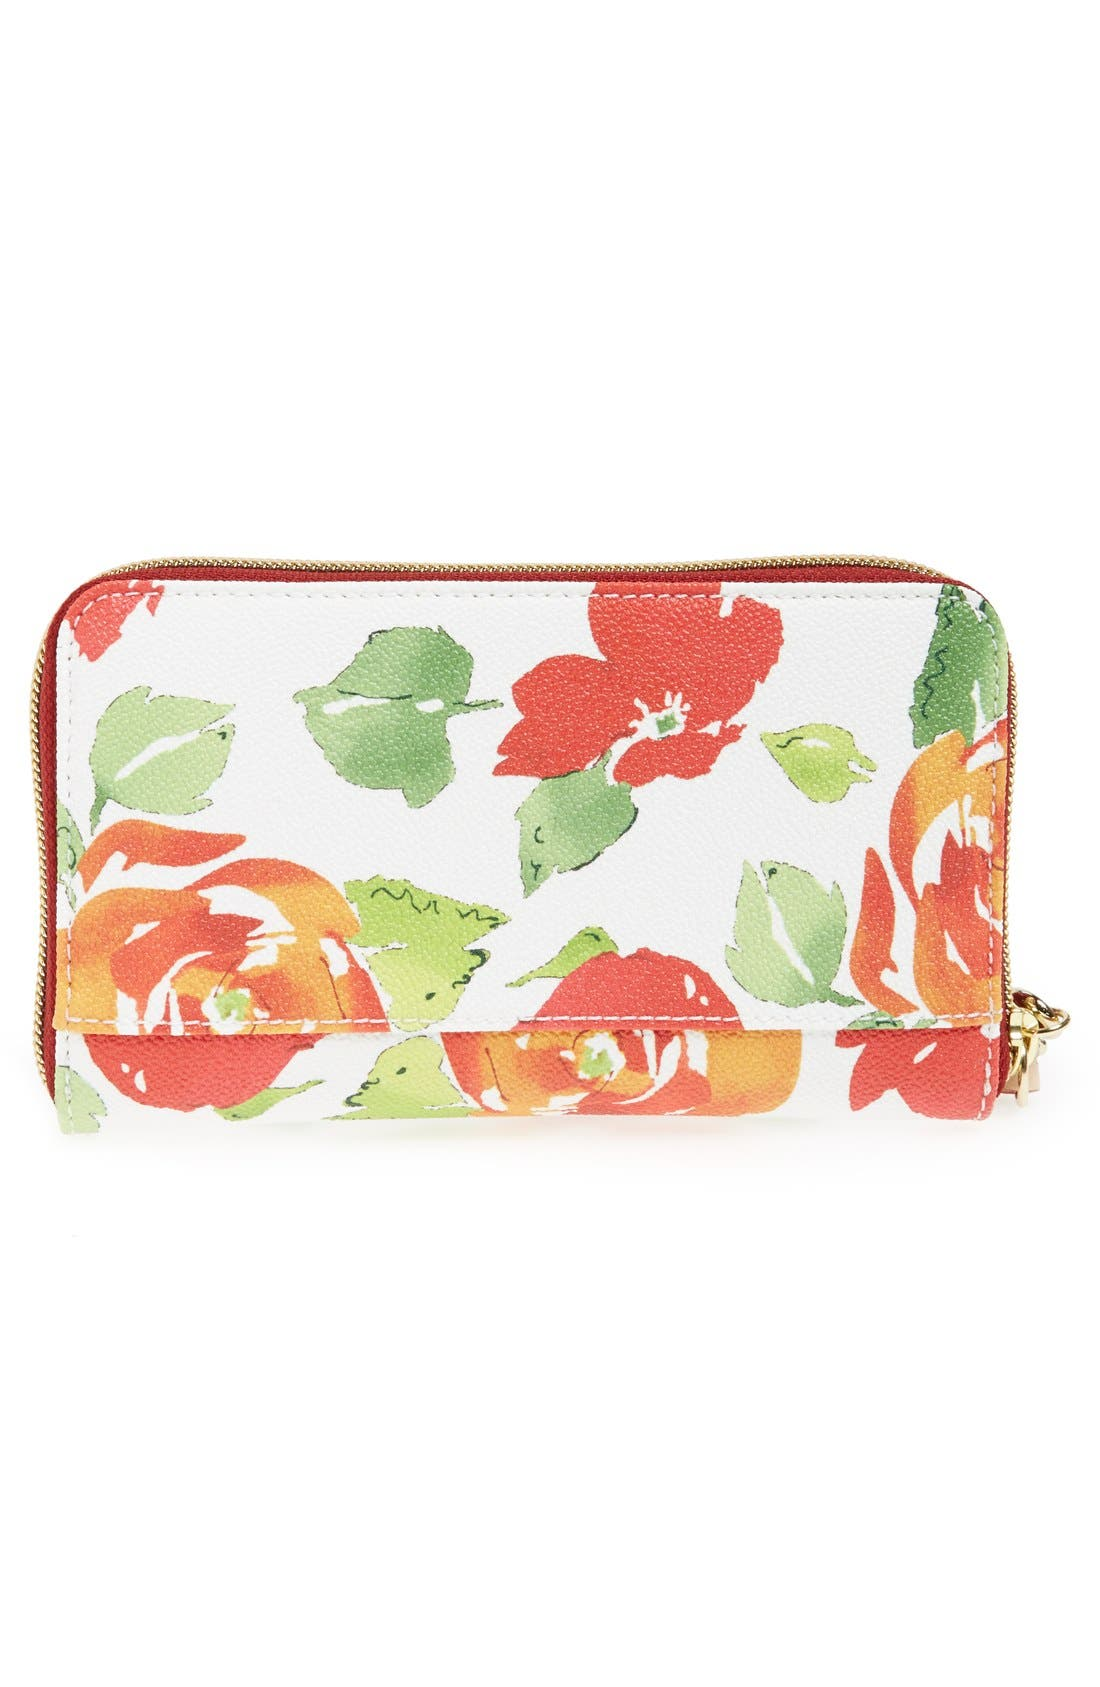 Alternate Image 3  - Dooney & Bourke 'Rose Garden' Zip Around Wristlet